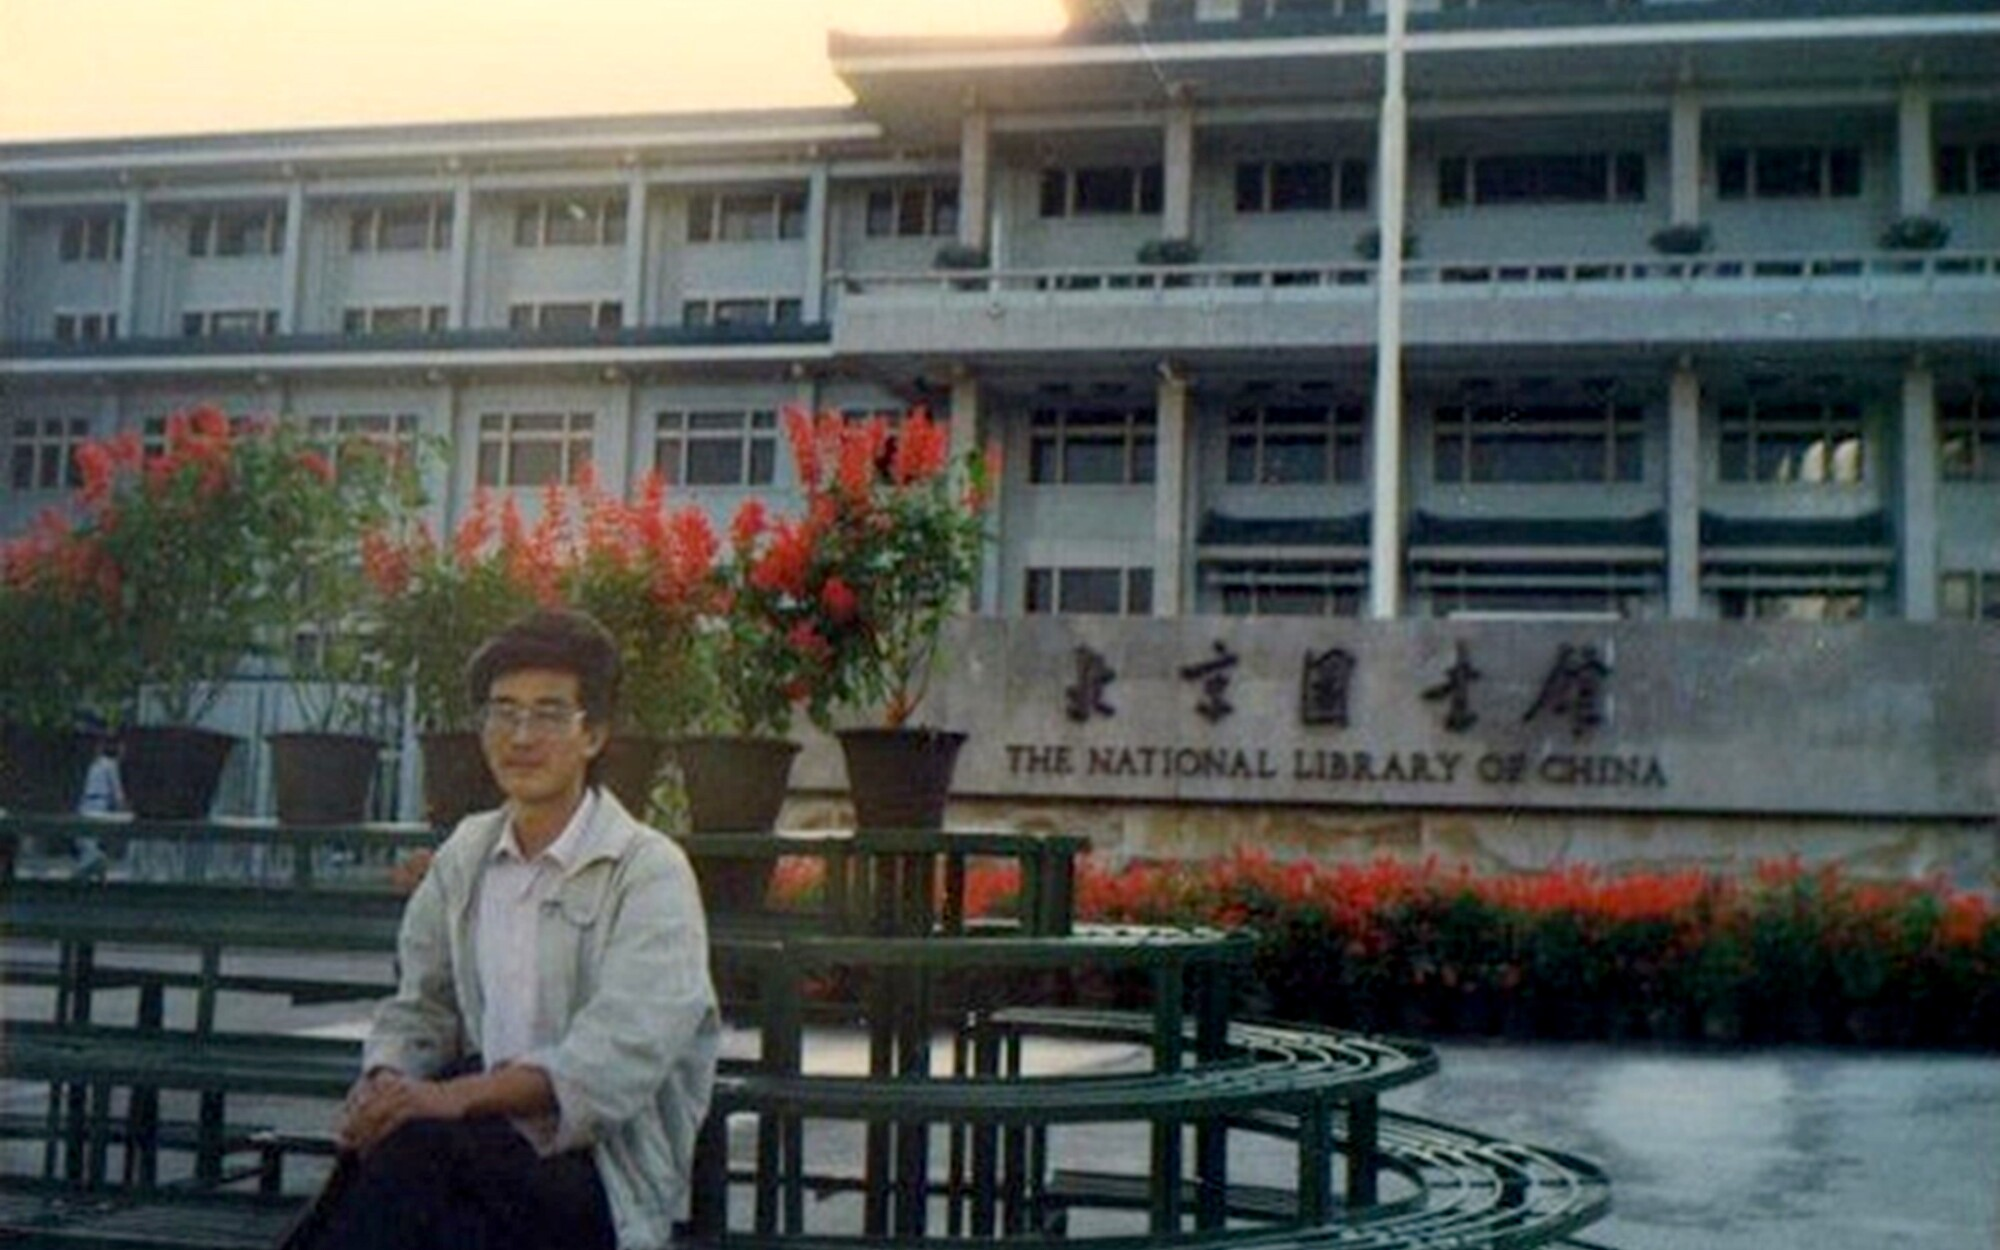 Lu Chunlin, a graduate student, was killed during the Tiananmen Square protests in 1989. He was 27 years old at the time.